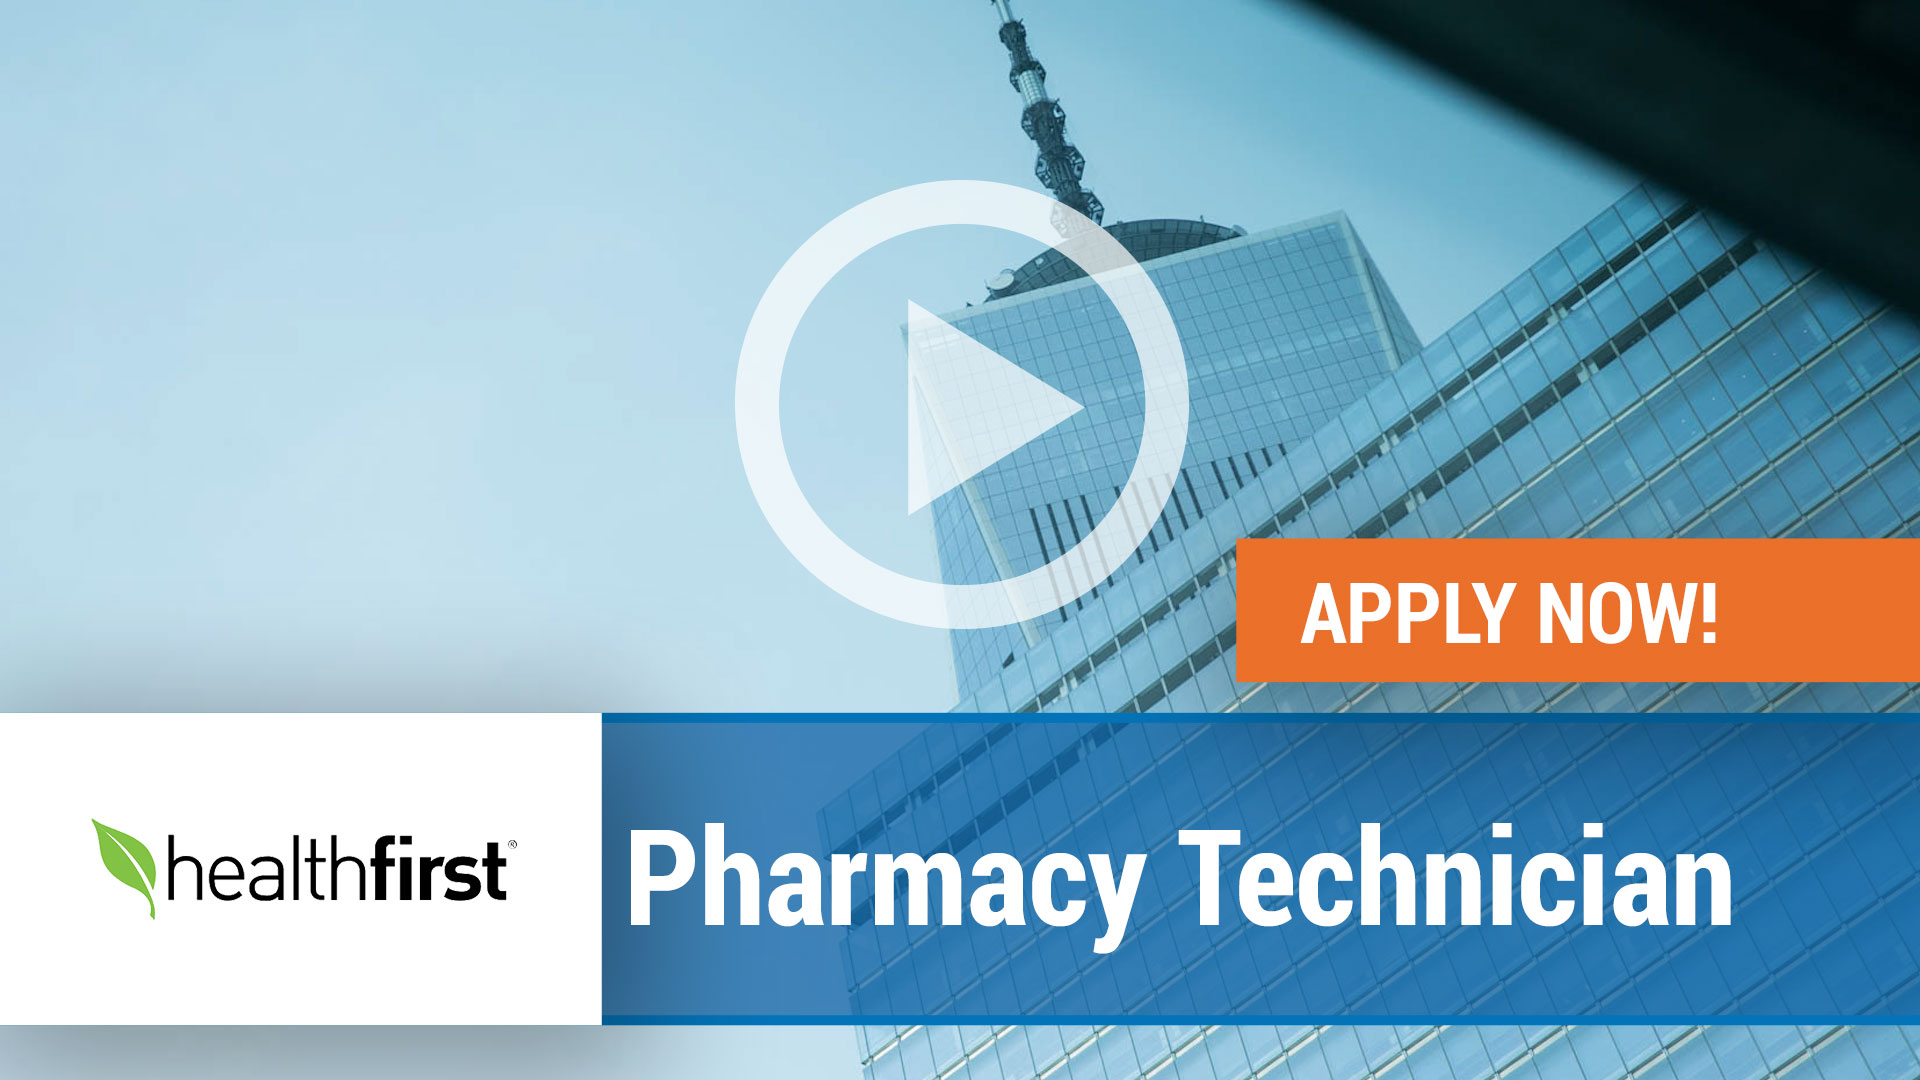 Watch our careers video for available job opening Pharmacy Technician in NYC and Lake Mary, FL